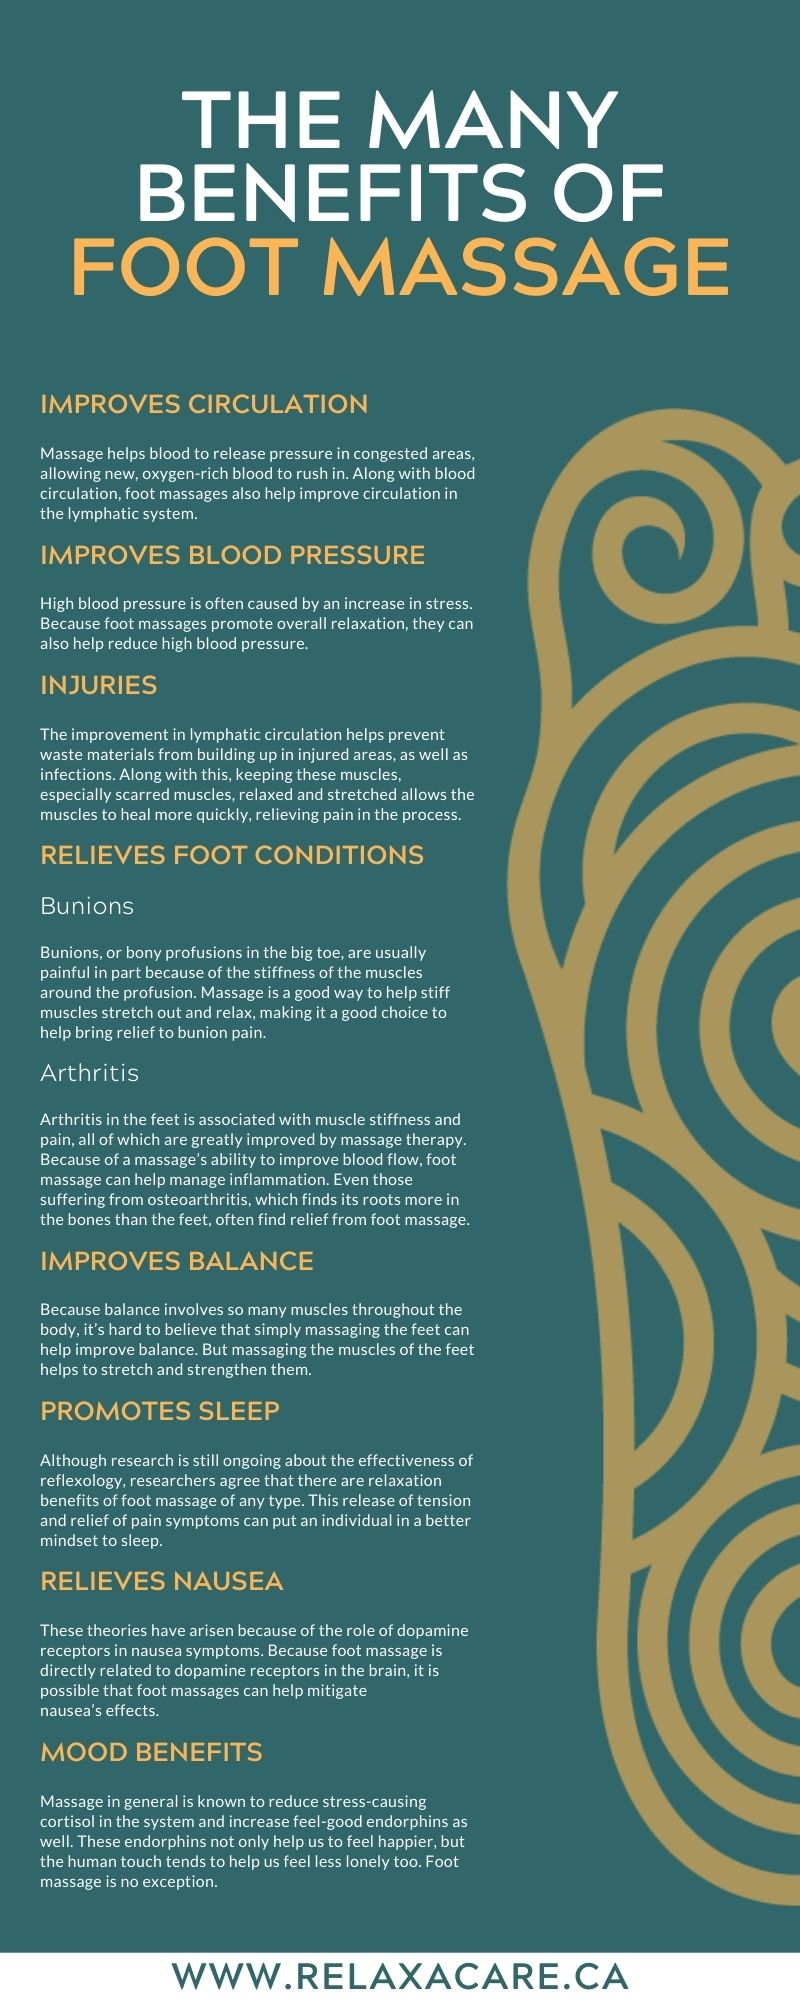 The Many Benefits of Foot Massage